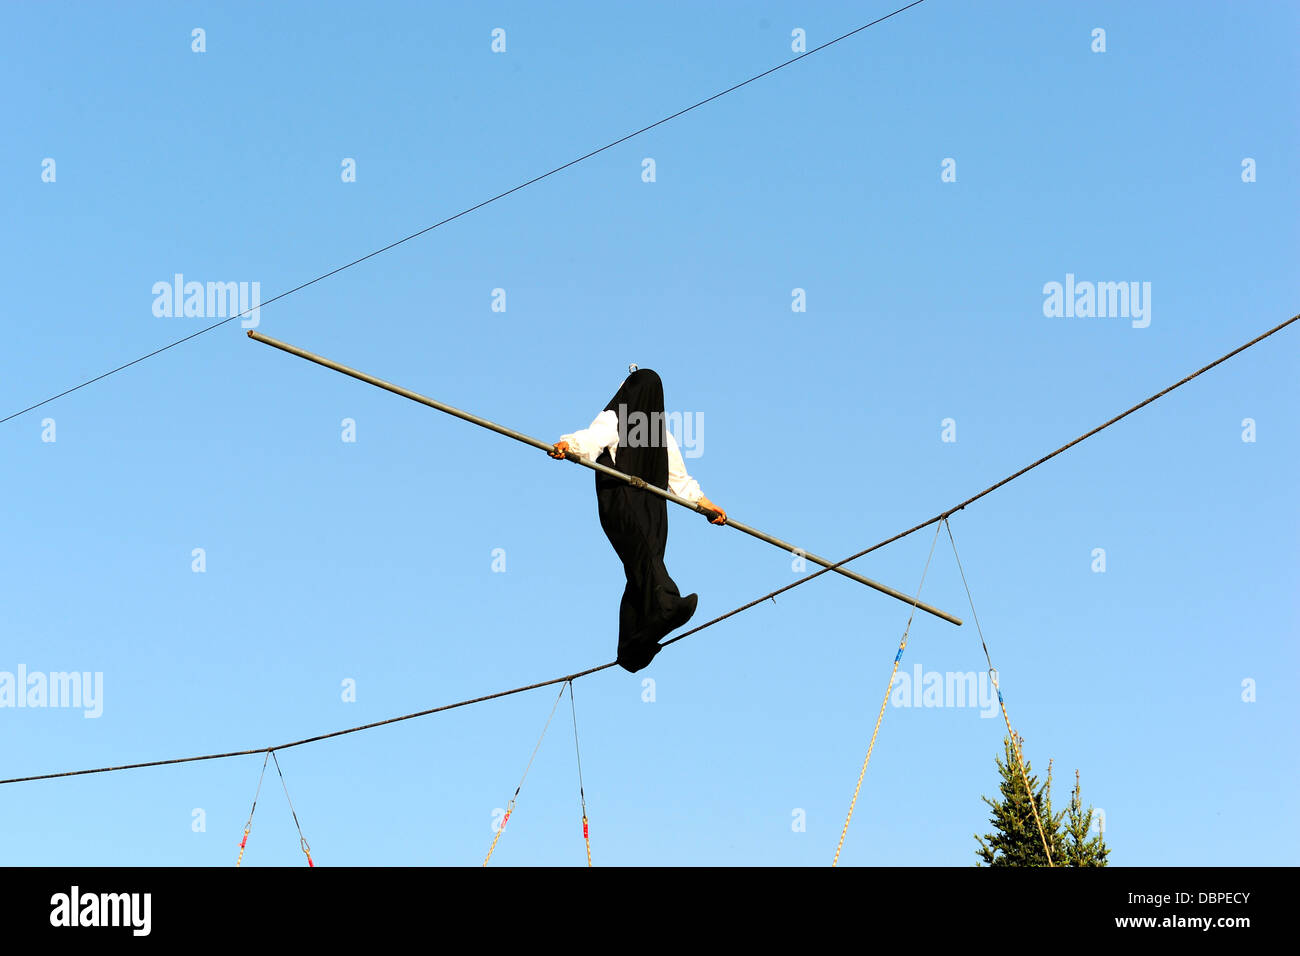 Ropedancer's performance in a black bag - Stock Image